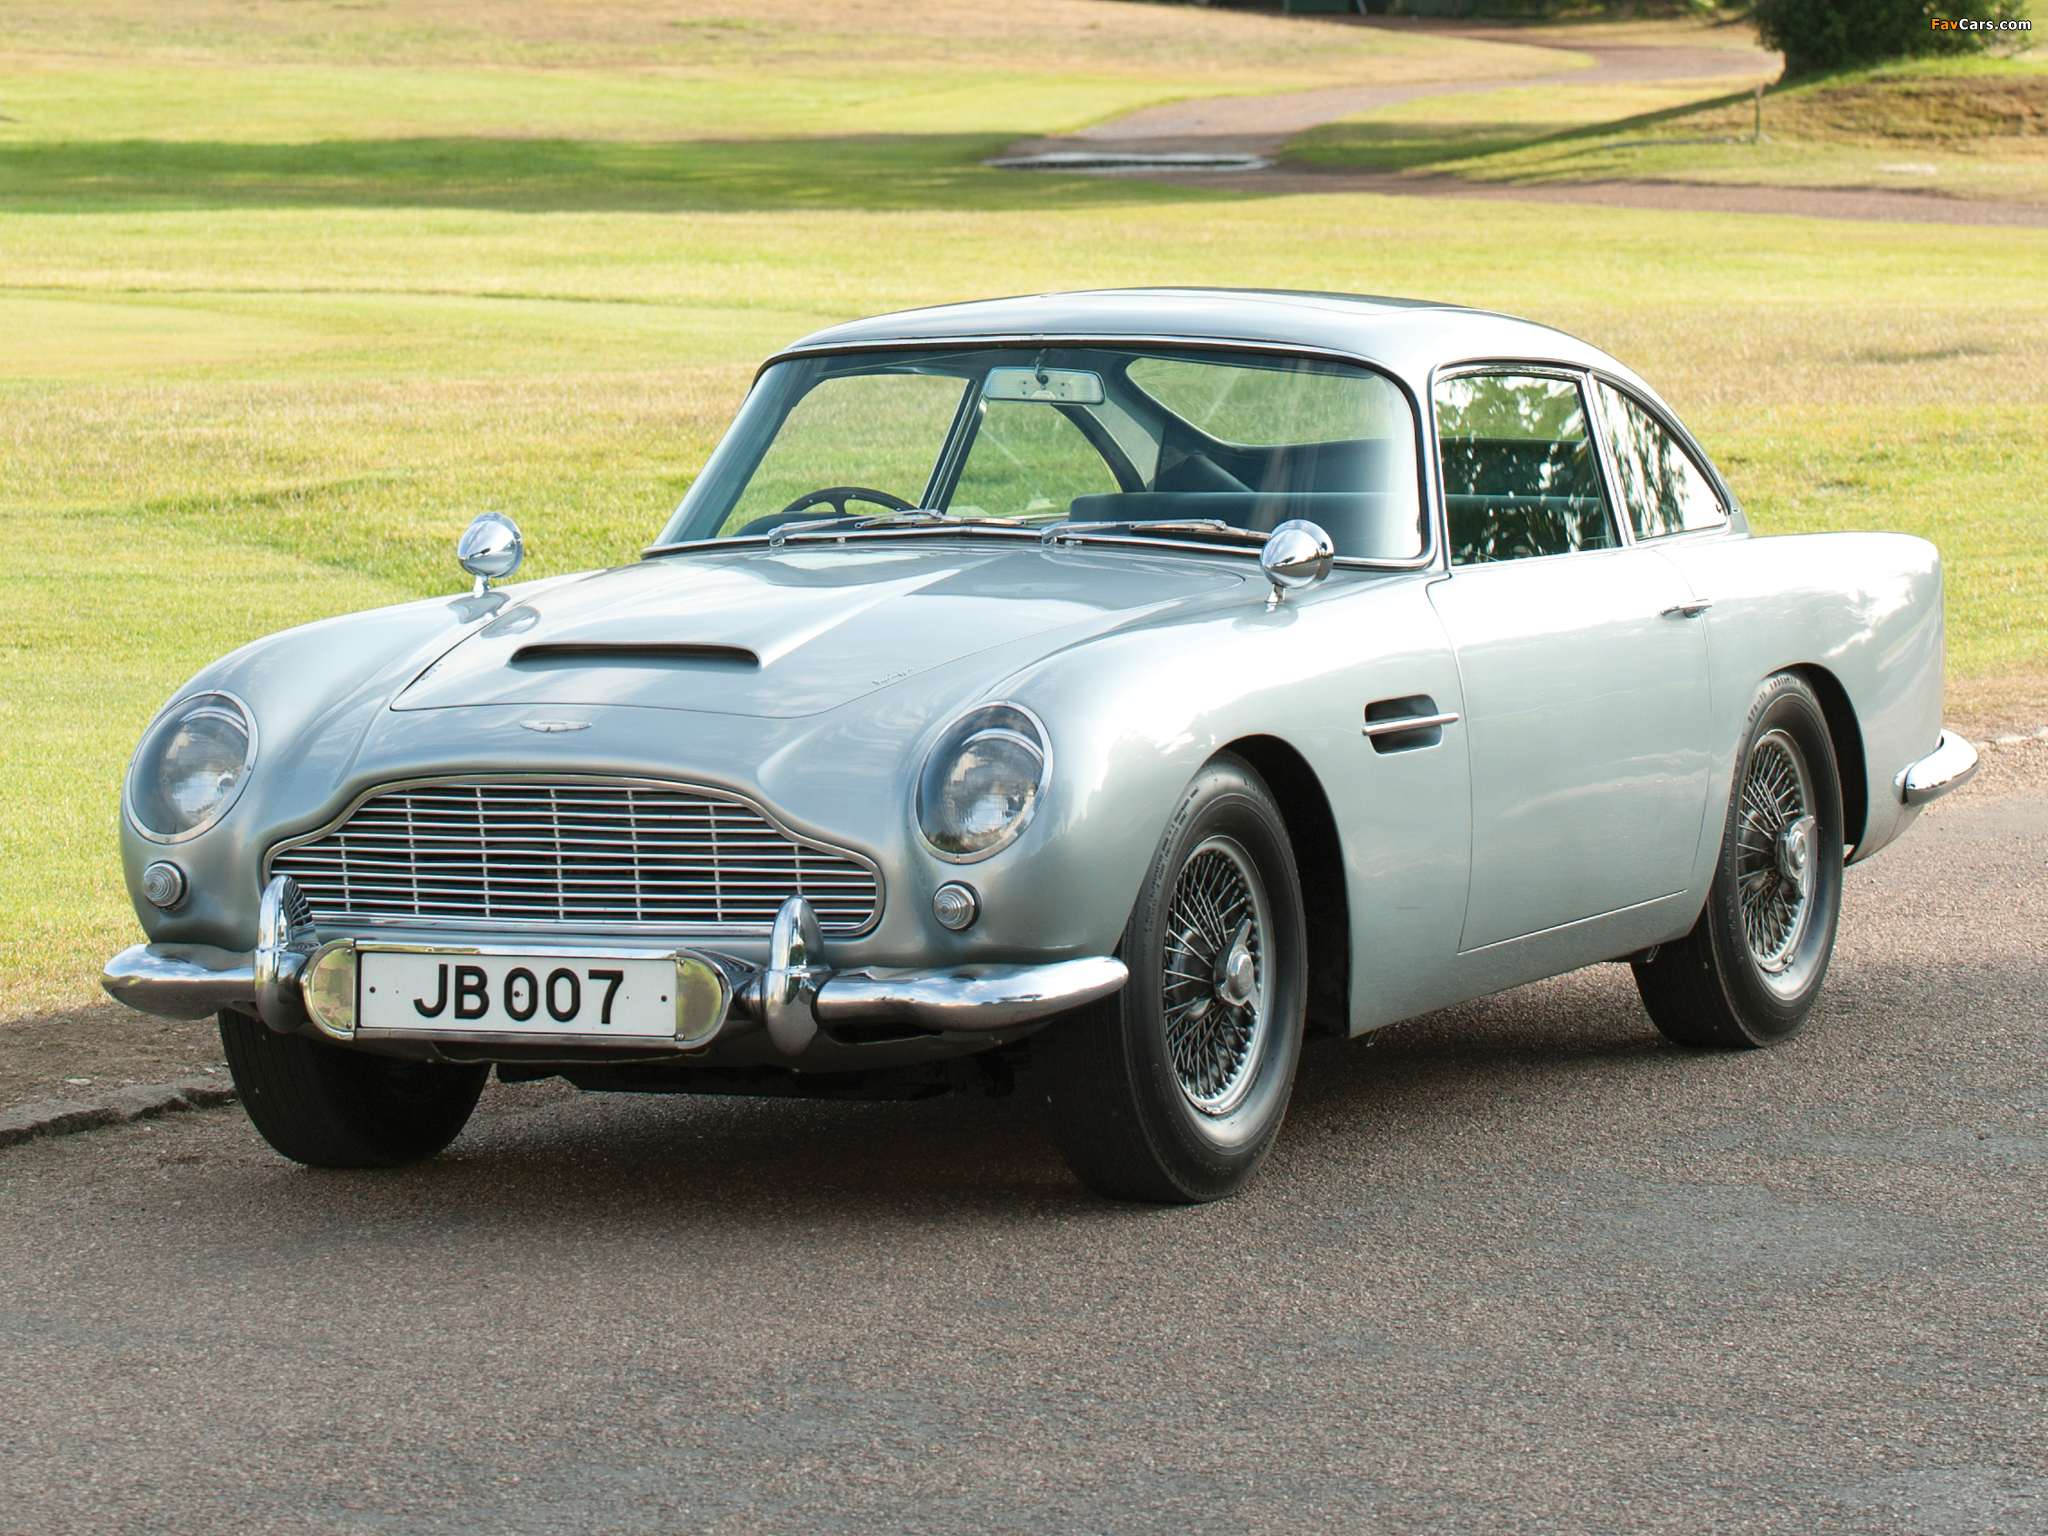 Want Date James Bond Daniel Craig Offers Himself Aston Martin Two Lucky Fans 1610428 in addition James Bonds Guide To Bonds Heres How Daniel Craig Sean Connery Roger Moore Timothy Dalton And George Lazenby Would Match Up In The Fixed In e World in addition Rm Auction Roundup James Bonds Aston Martin Db5 More Pictures together with Meest Brute Sportautos Voor De Man furthermore James Bond 1965 Aston Martin Db5. on james bond aston martin